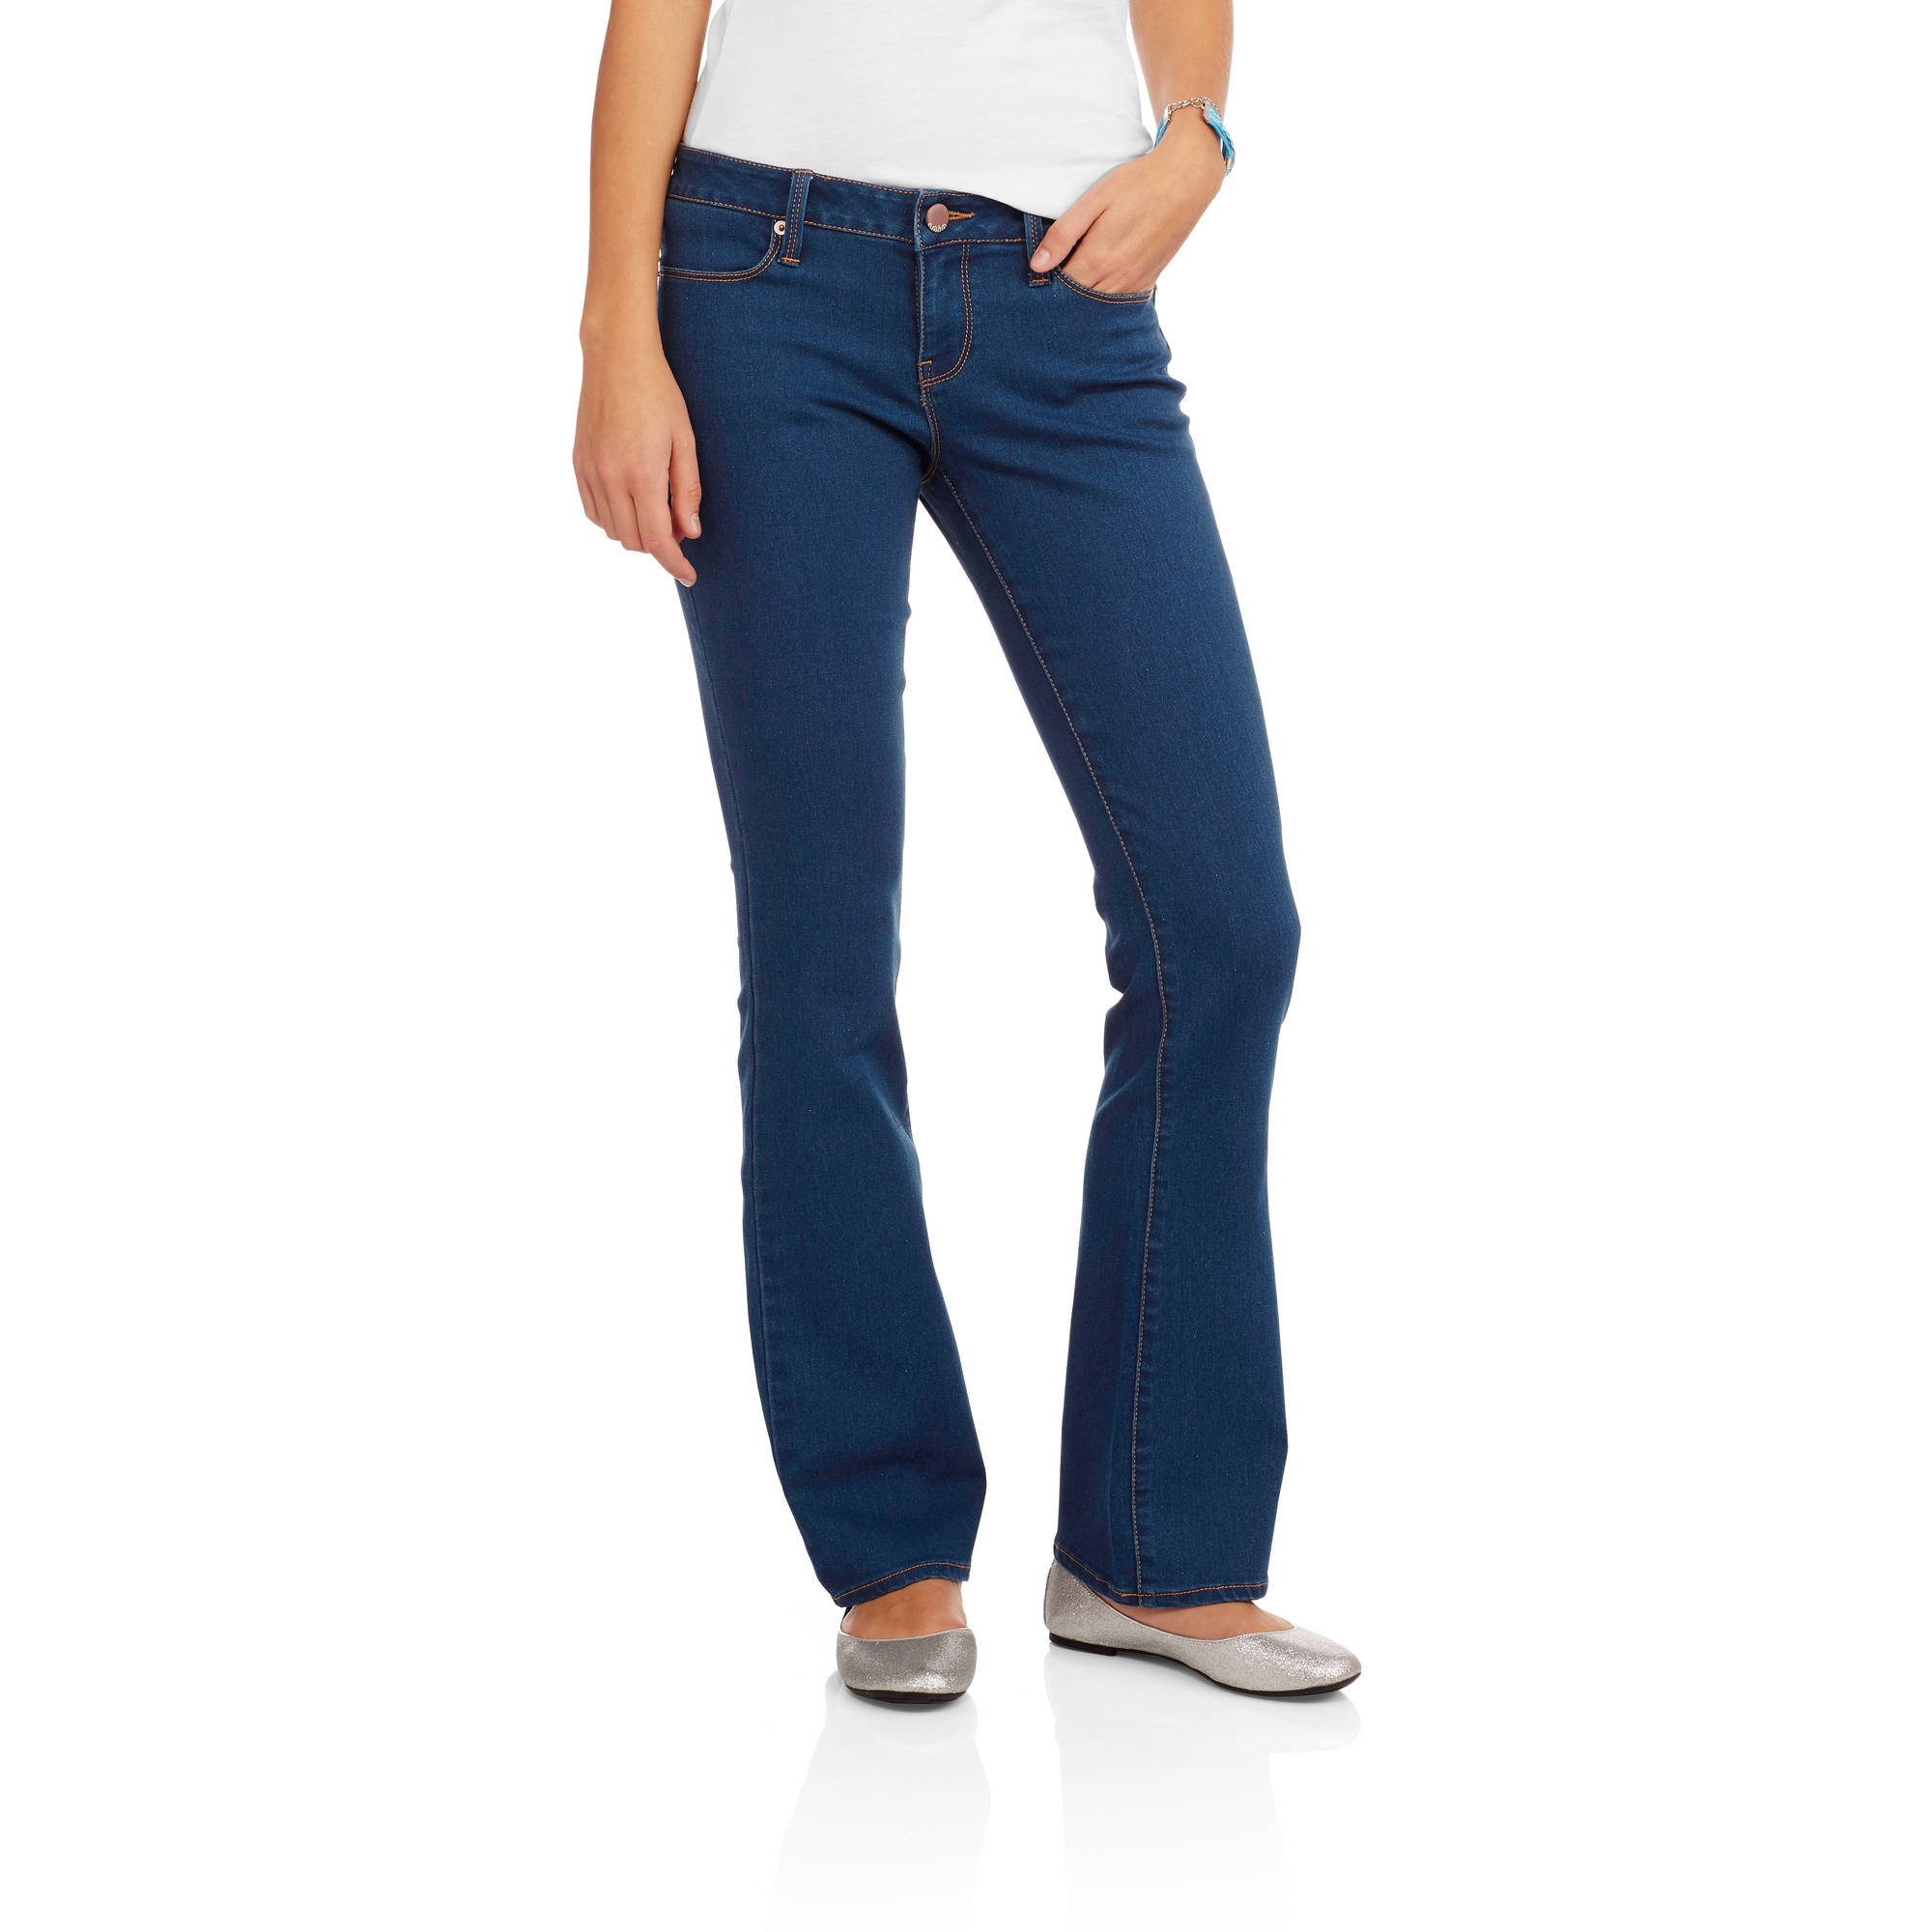 Juniors tall bootcut jeans